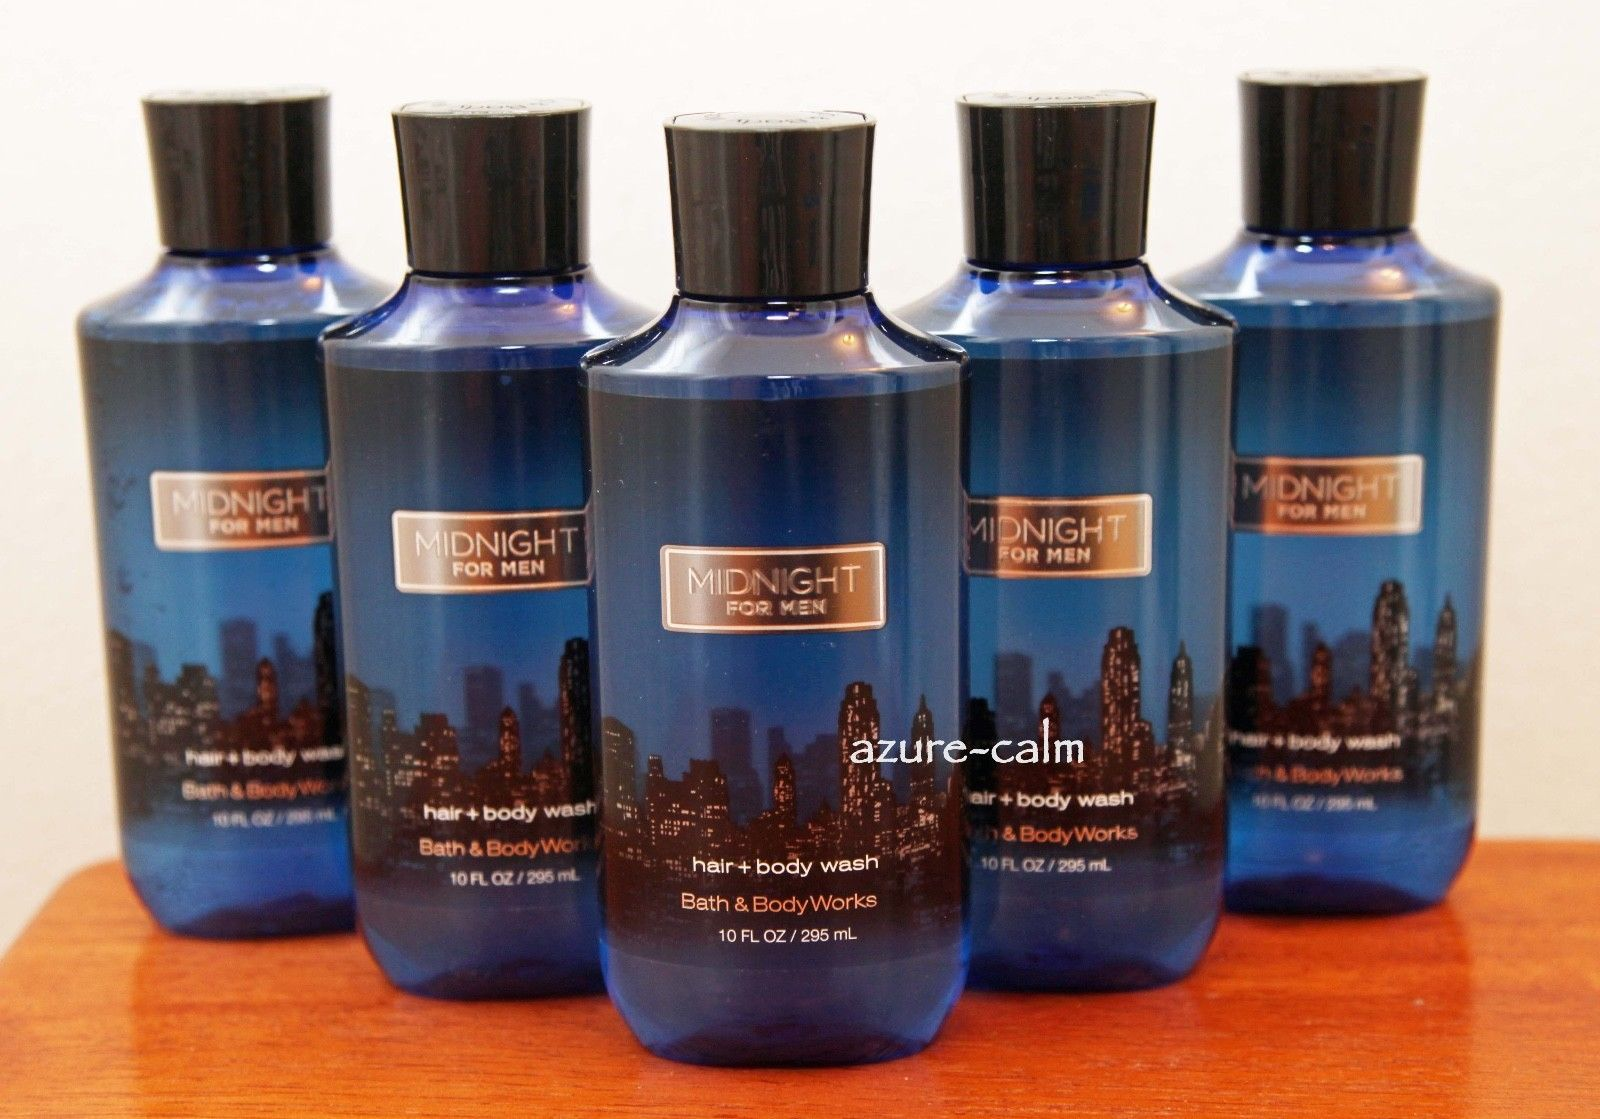 Body washes and shower gels bath and body works midnight for men